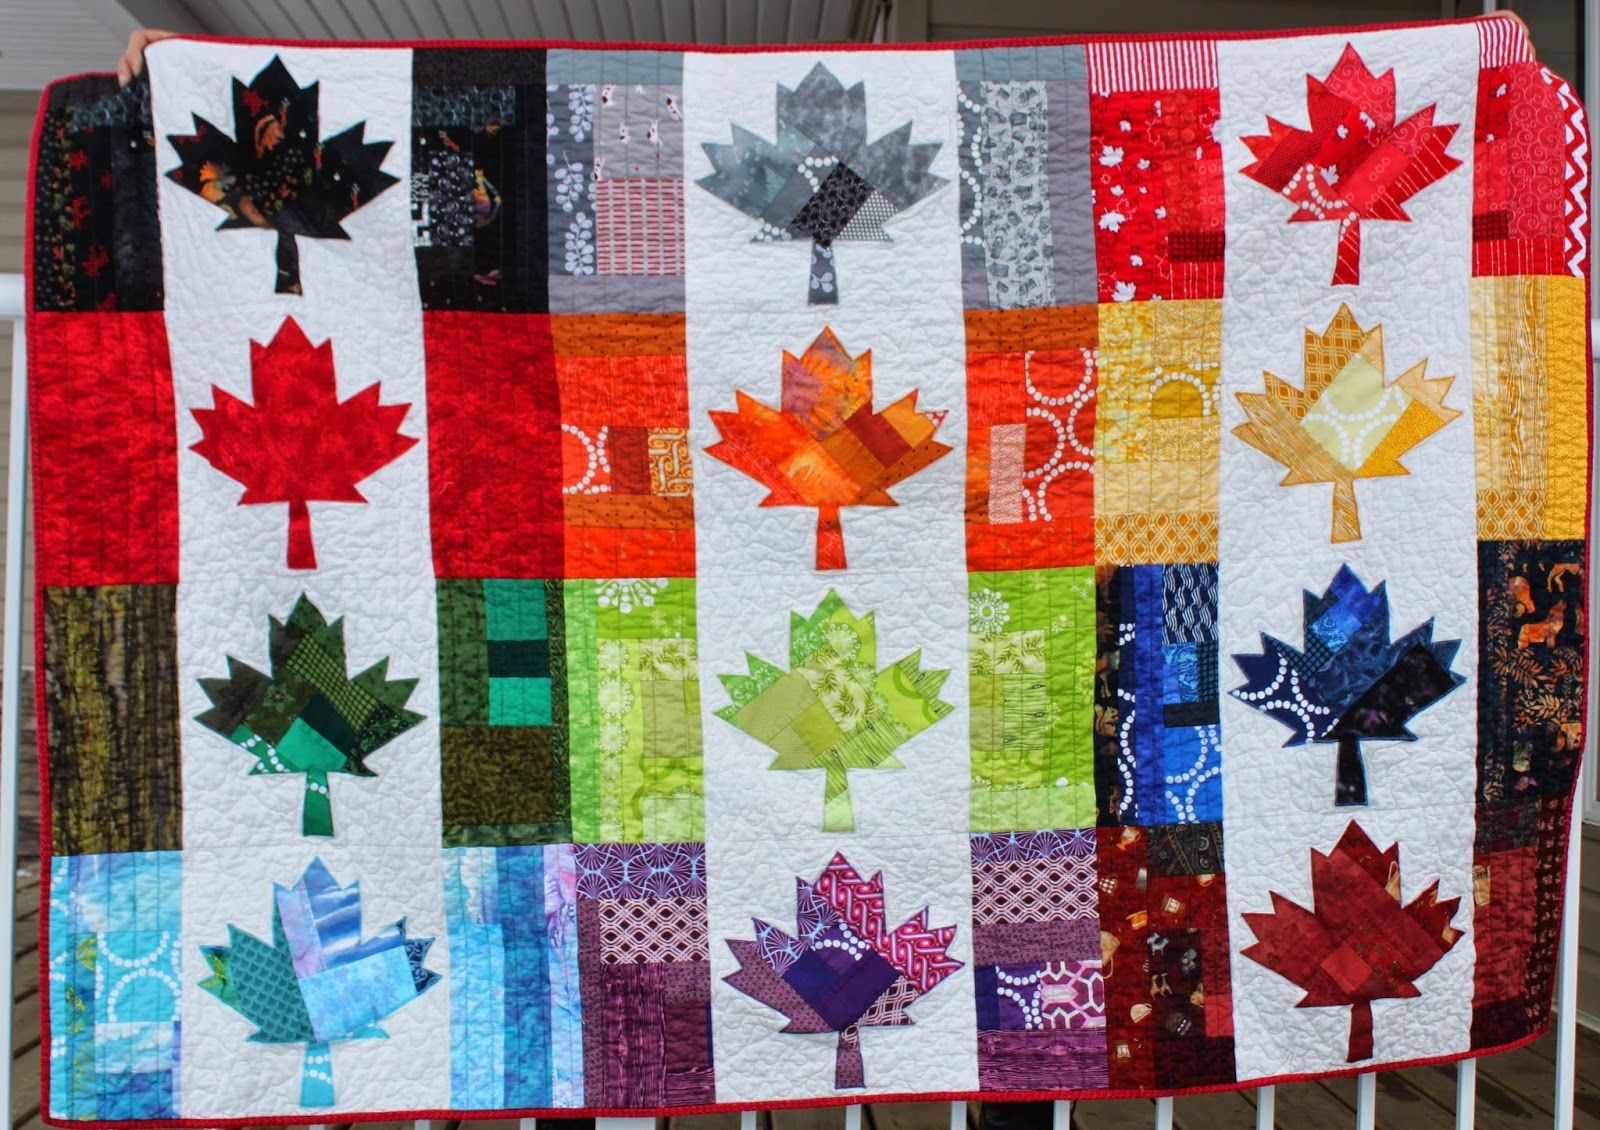 Sew vivor   Season 20 Quilter's Edition   Audition Entry ...